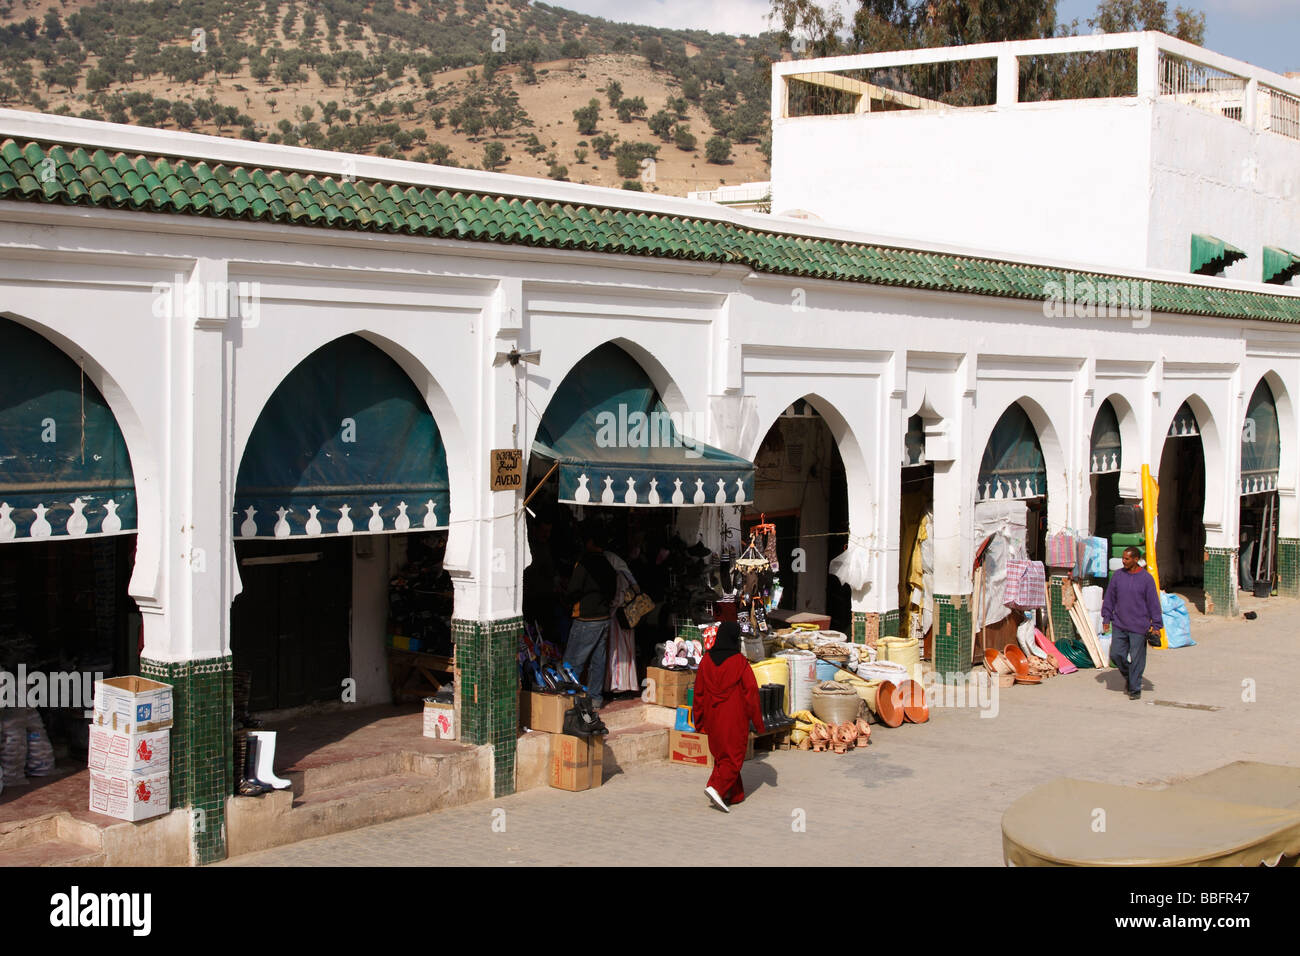 Africa, North Africa, Morocco, Moulay Idriss, Town Square Shop Fronts - Stock Image